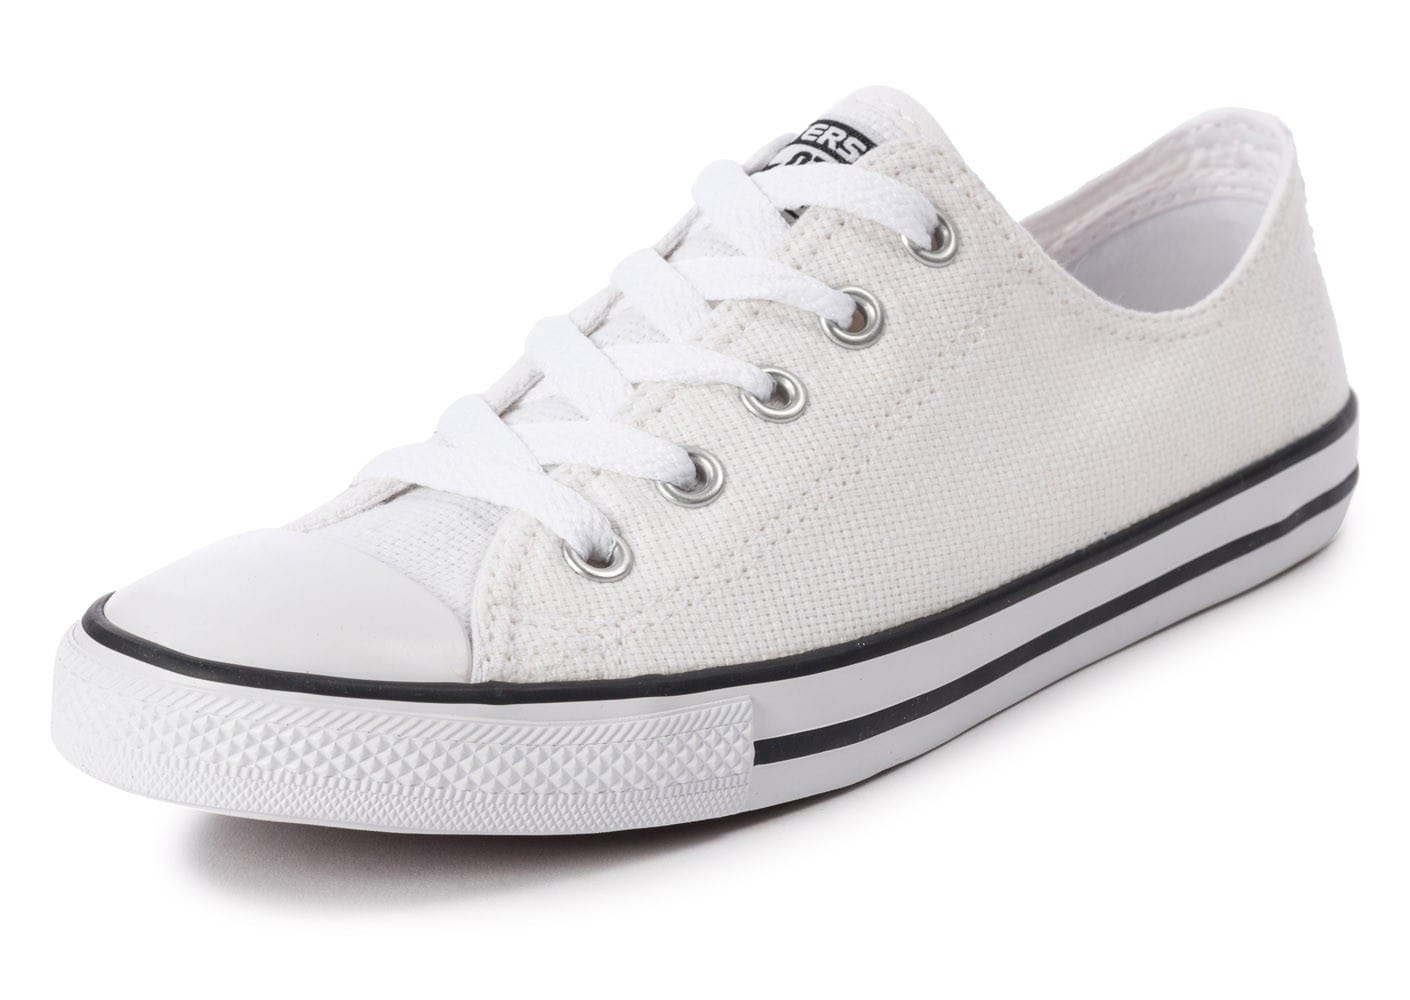 Converse Chuck Taylor Dainty OX blanche Chaussures